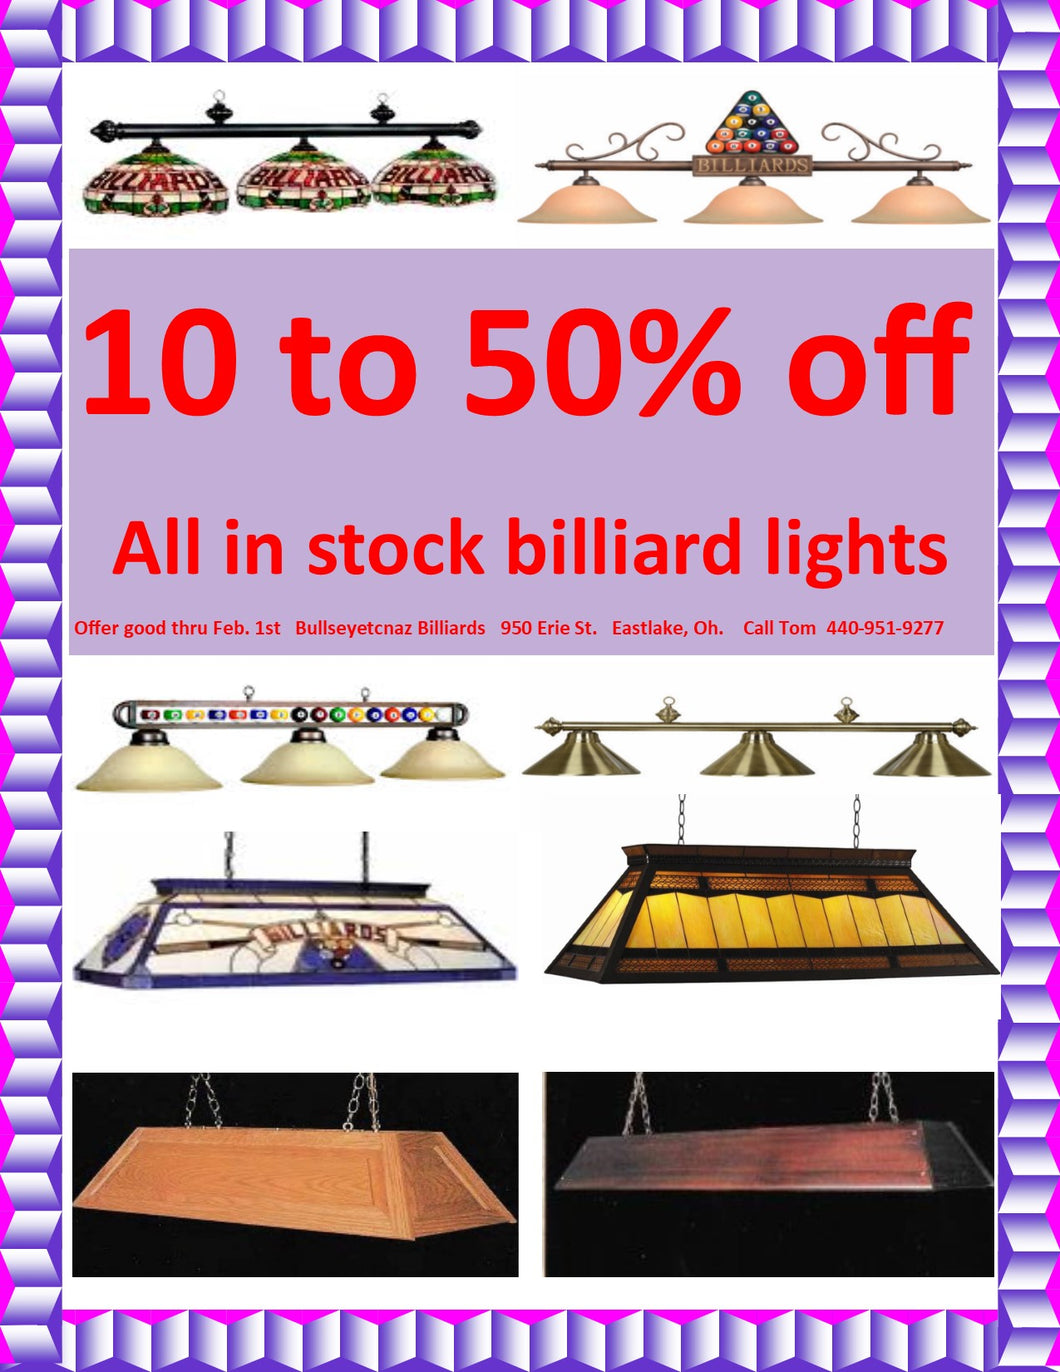 10% to 50% off all in stock billiard lights.